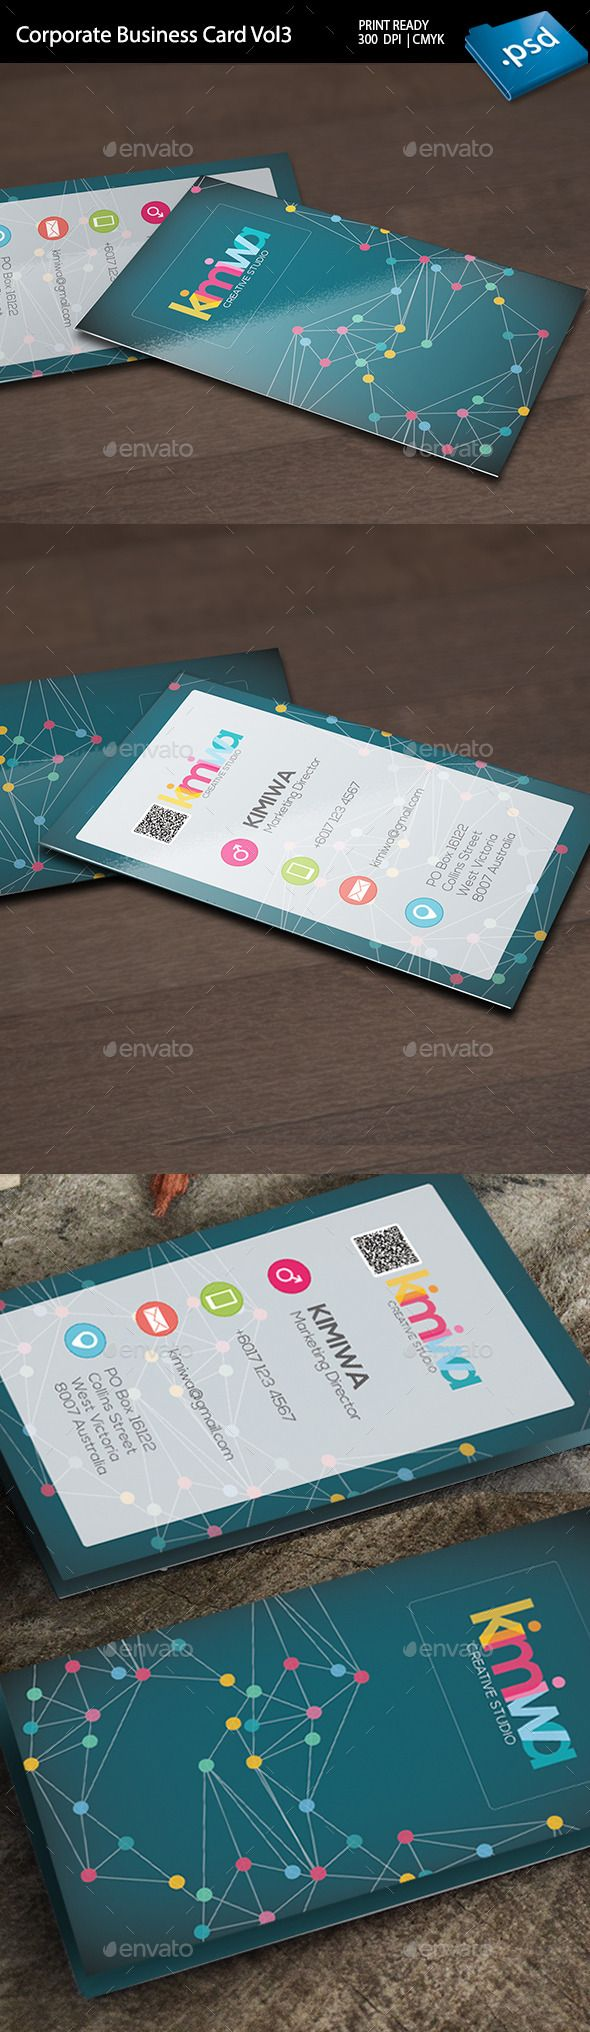 Corporate Business Card Vol3 - Corporate Business Card Template PSD. Download here: http://graphicriver.net/item/corporate-business-card-vol3-/12231571?s_rank=1777